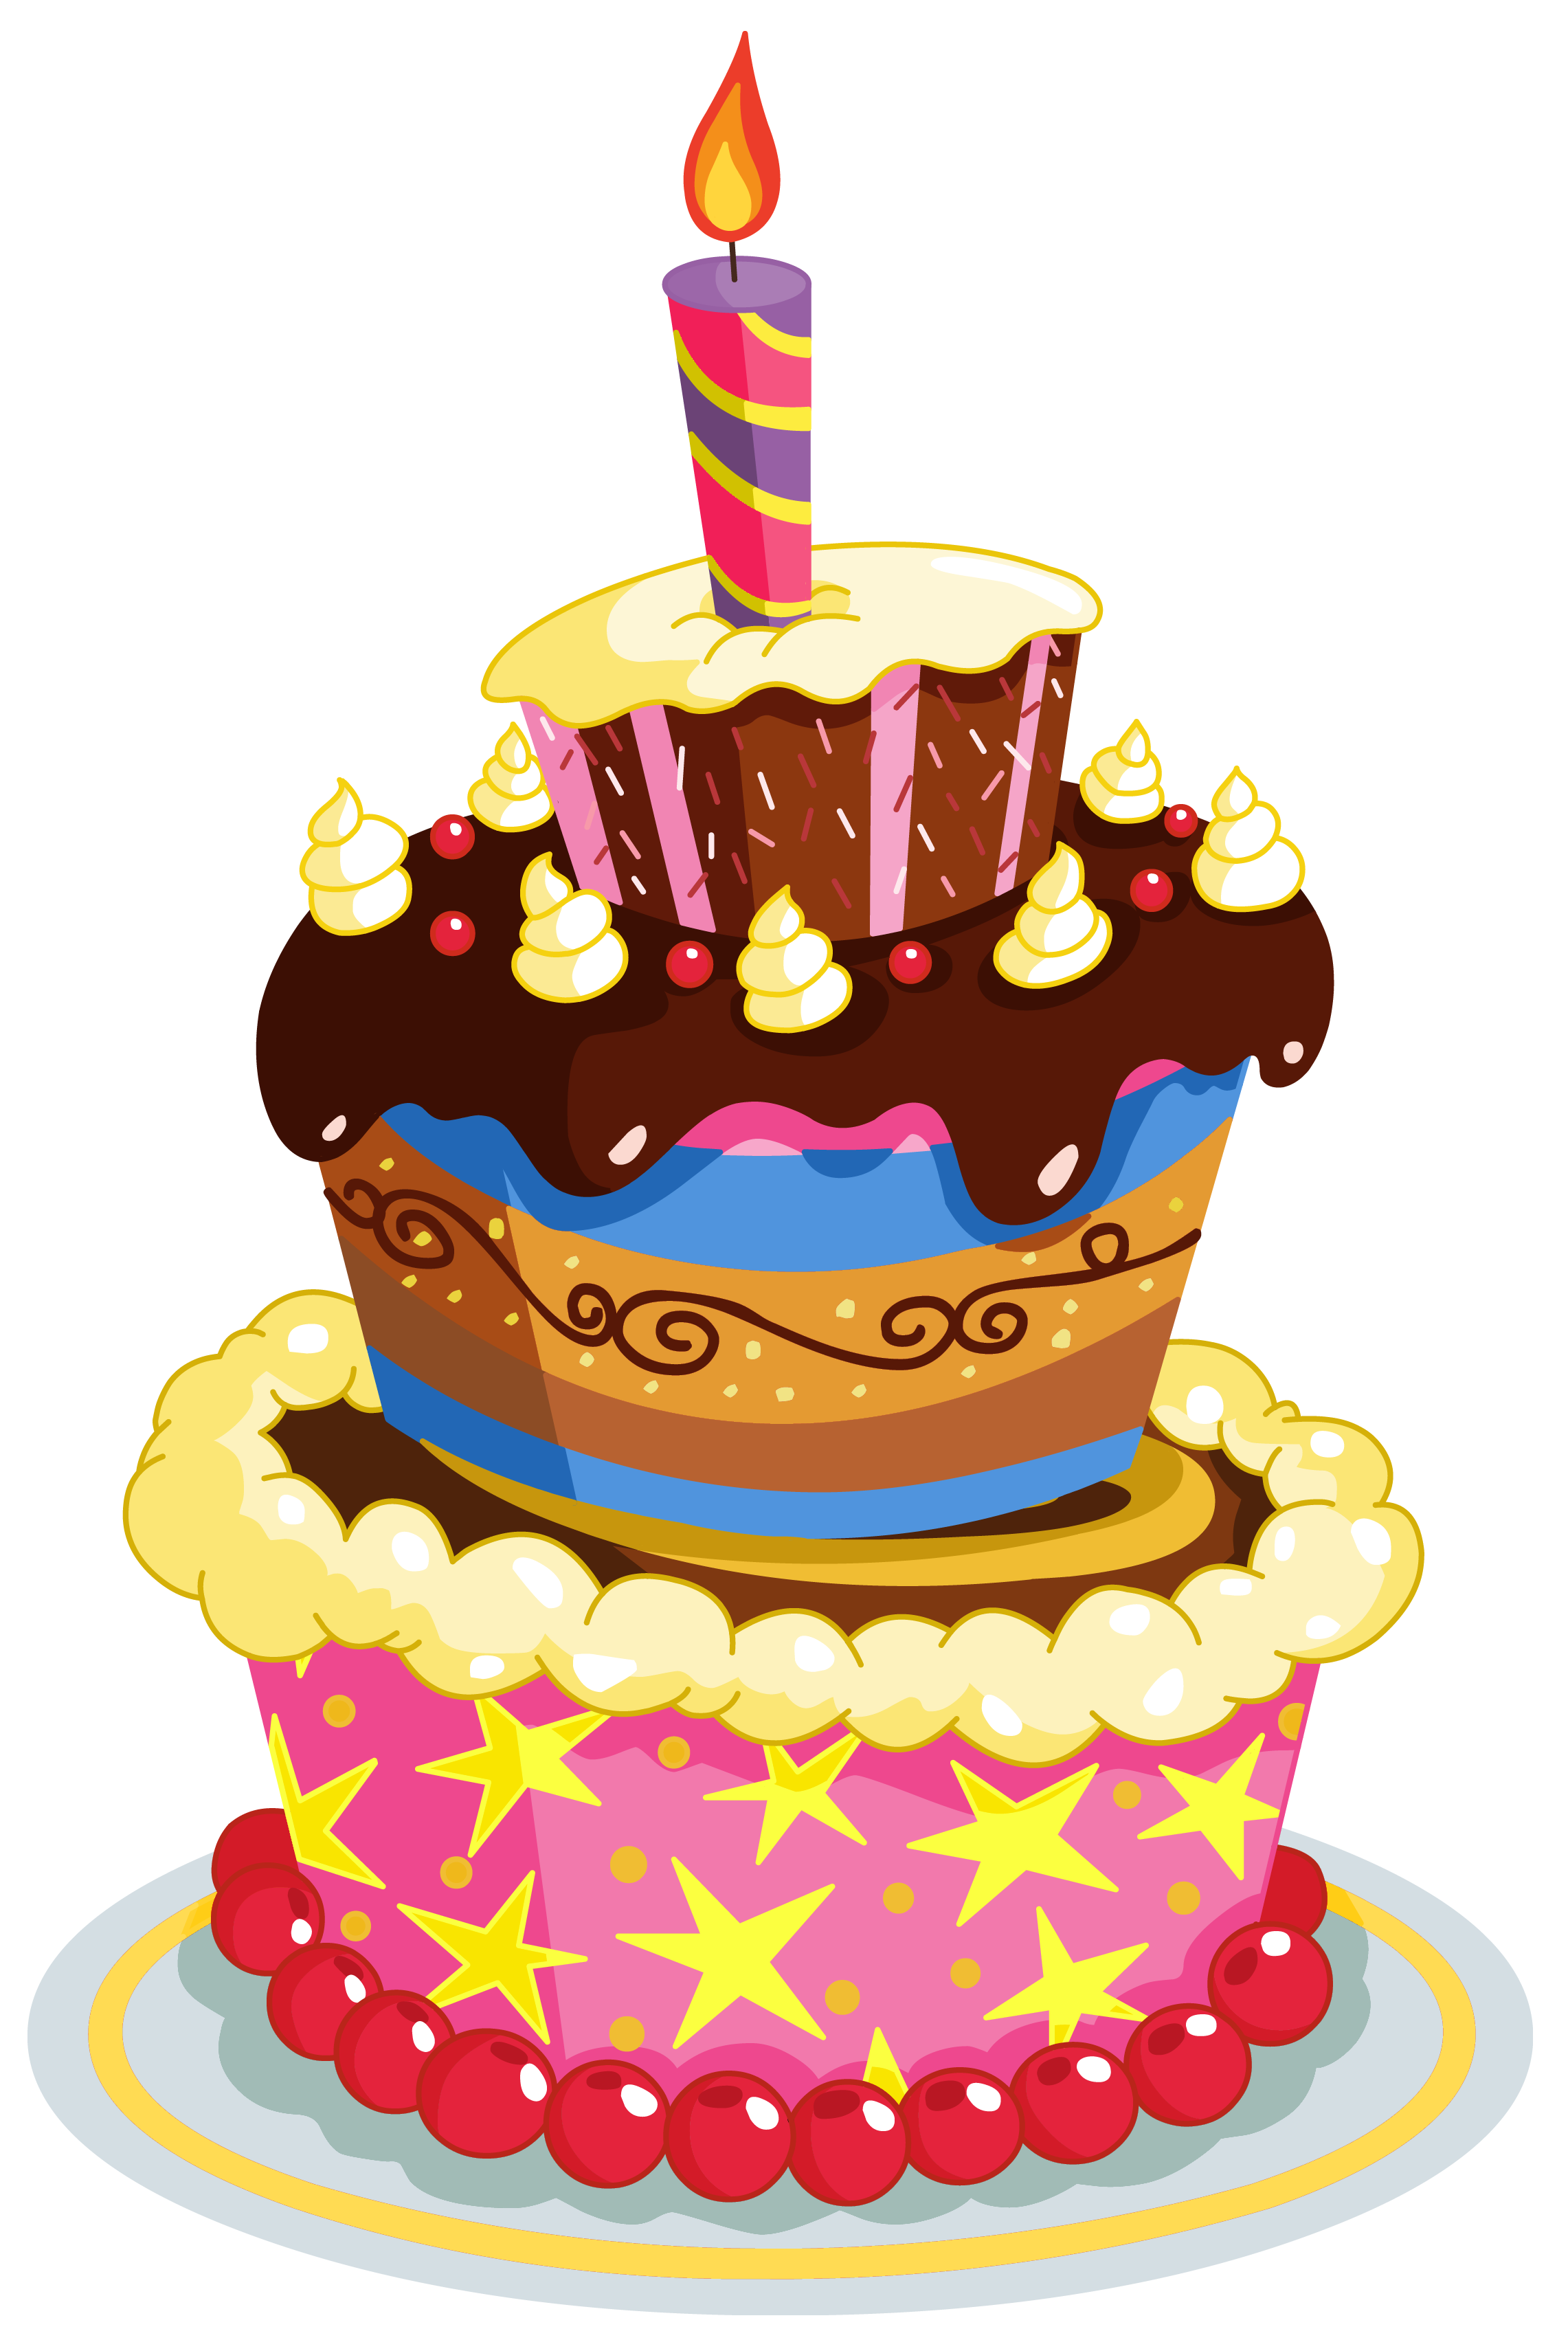 Cake PNG images free download, birthday cake PNG images free.